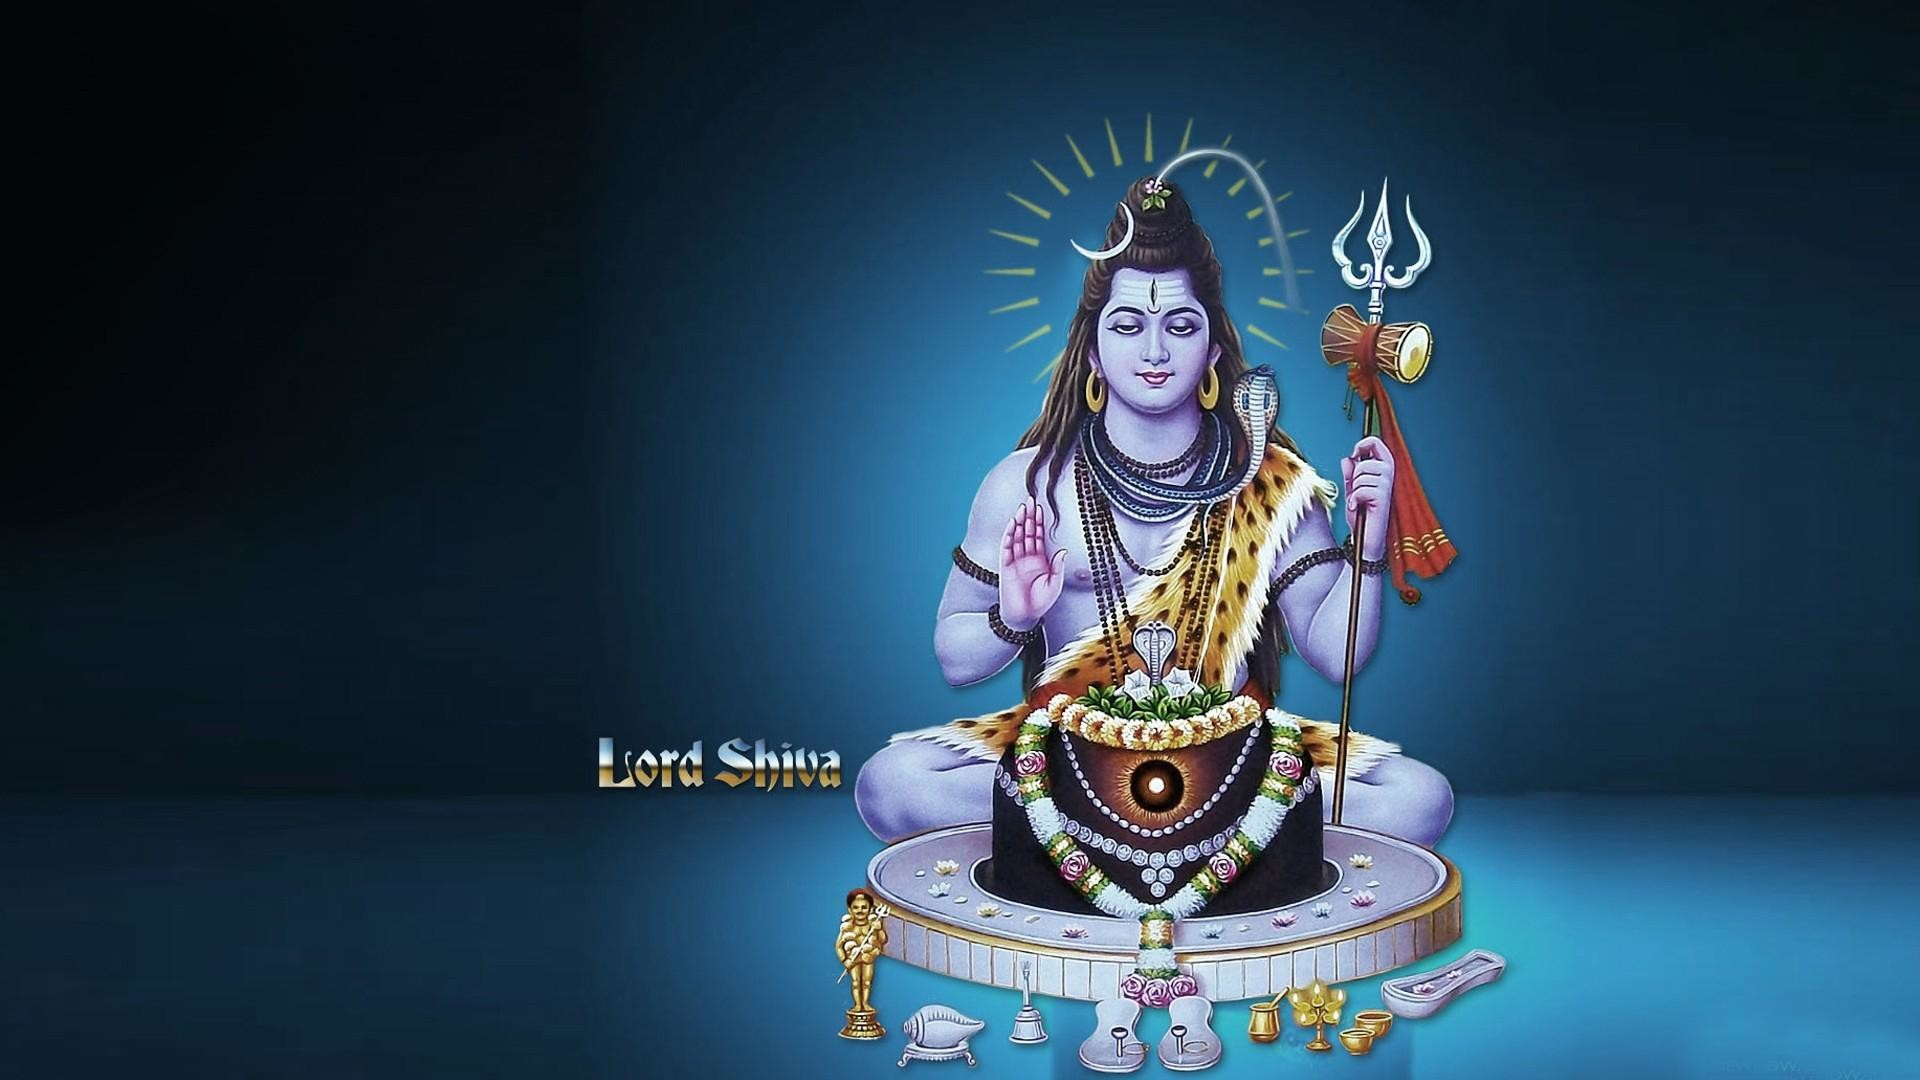 1920x1080 god shiva wallpaper download #629691